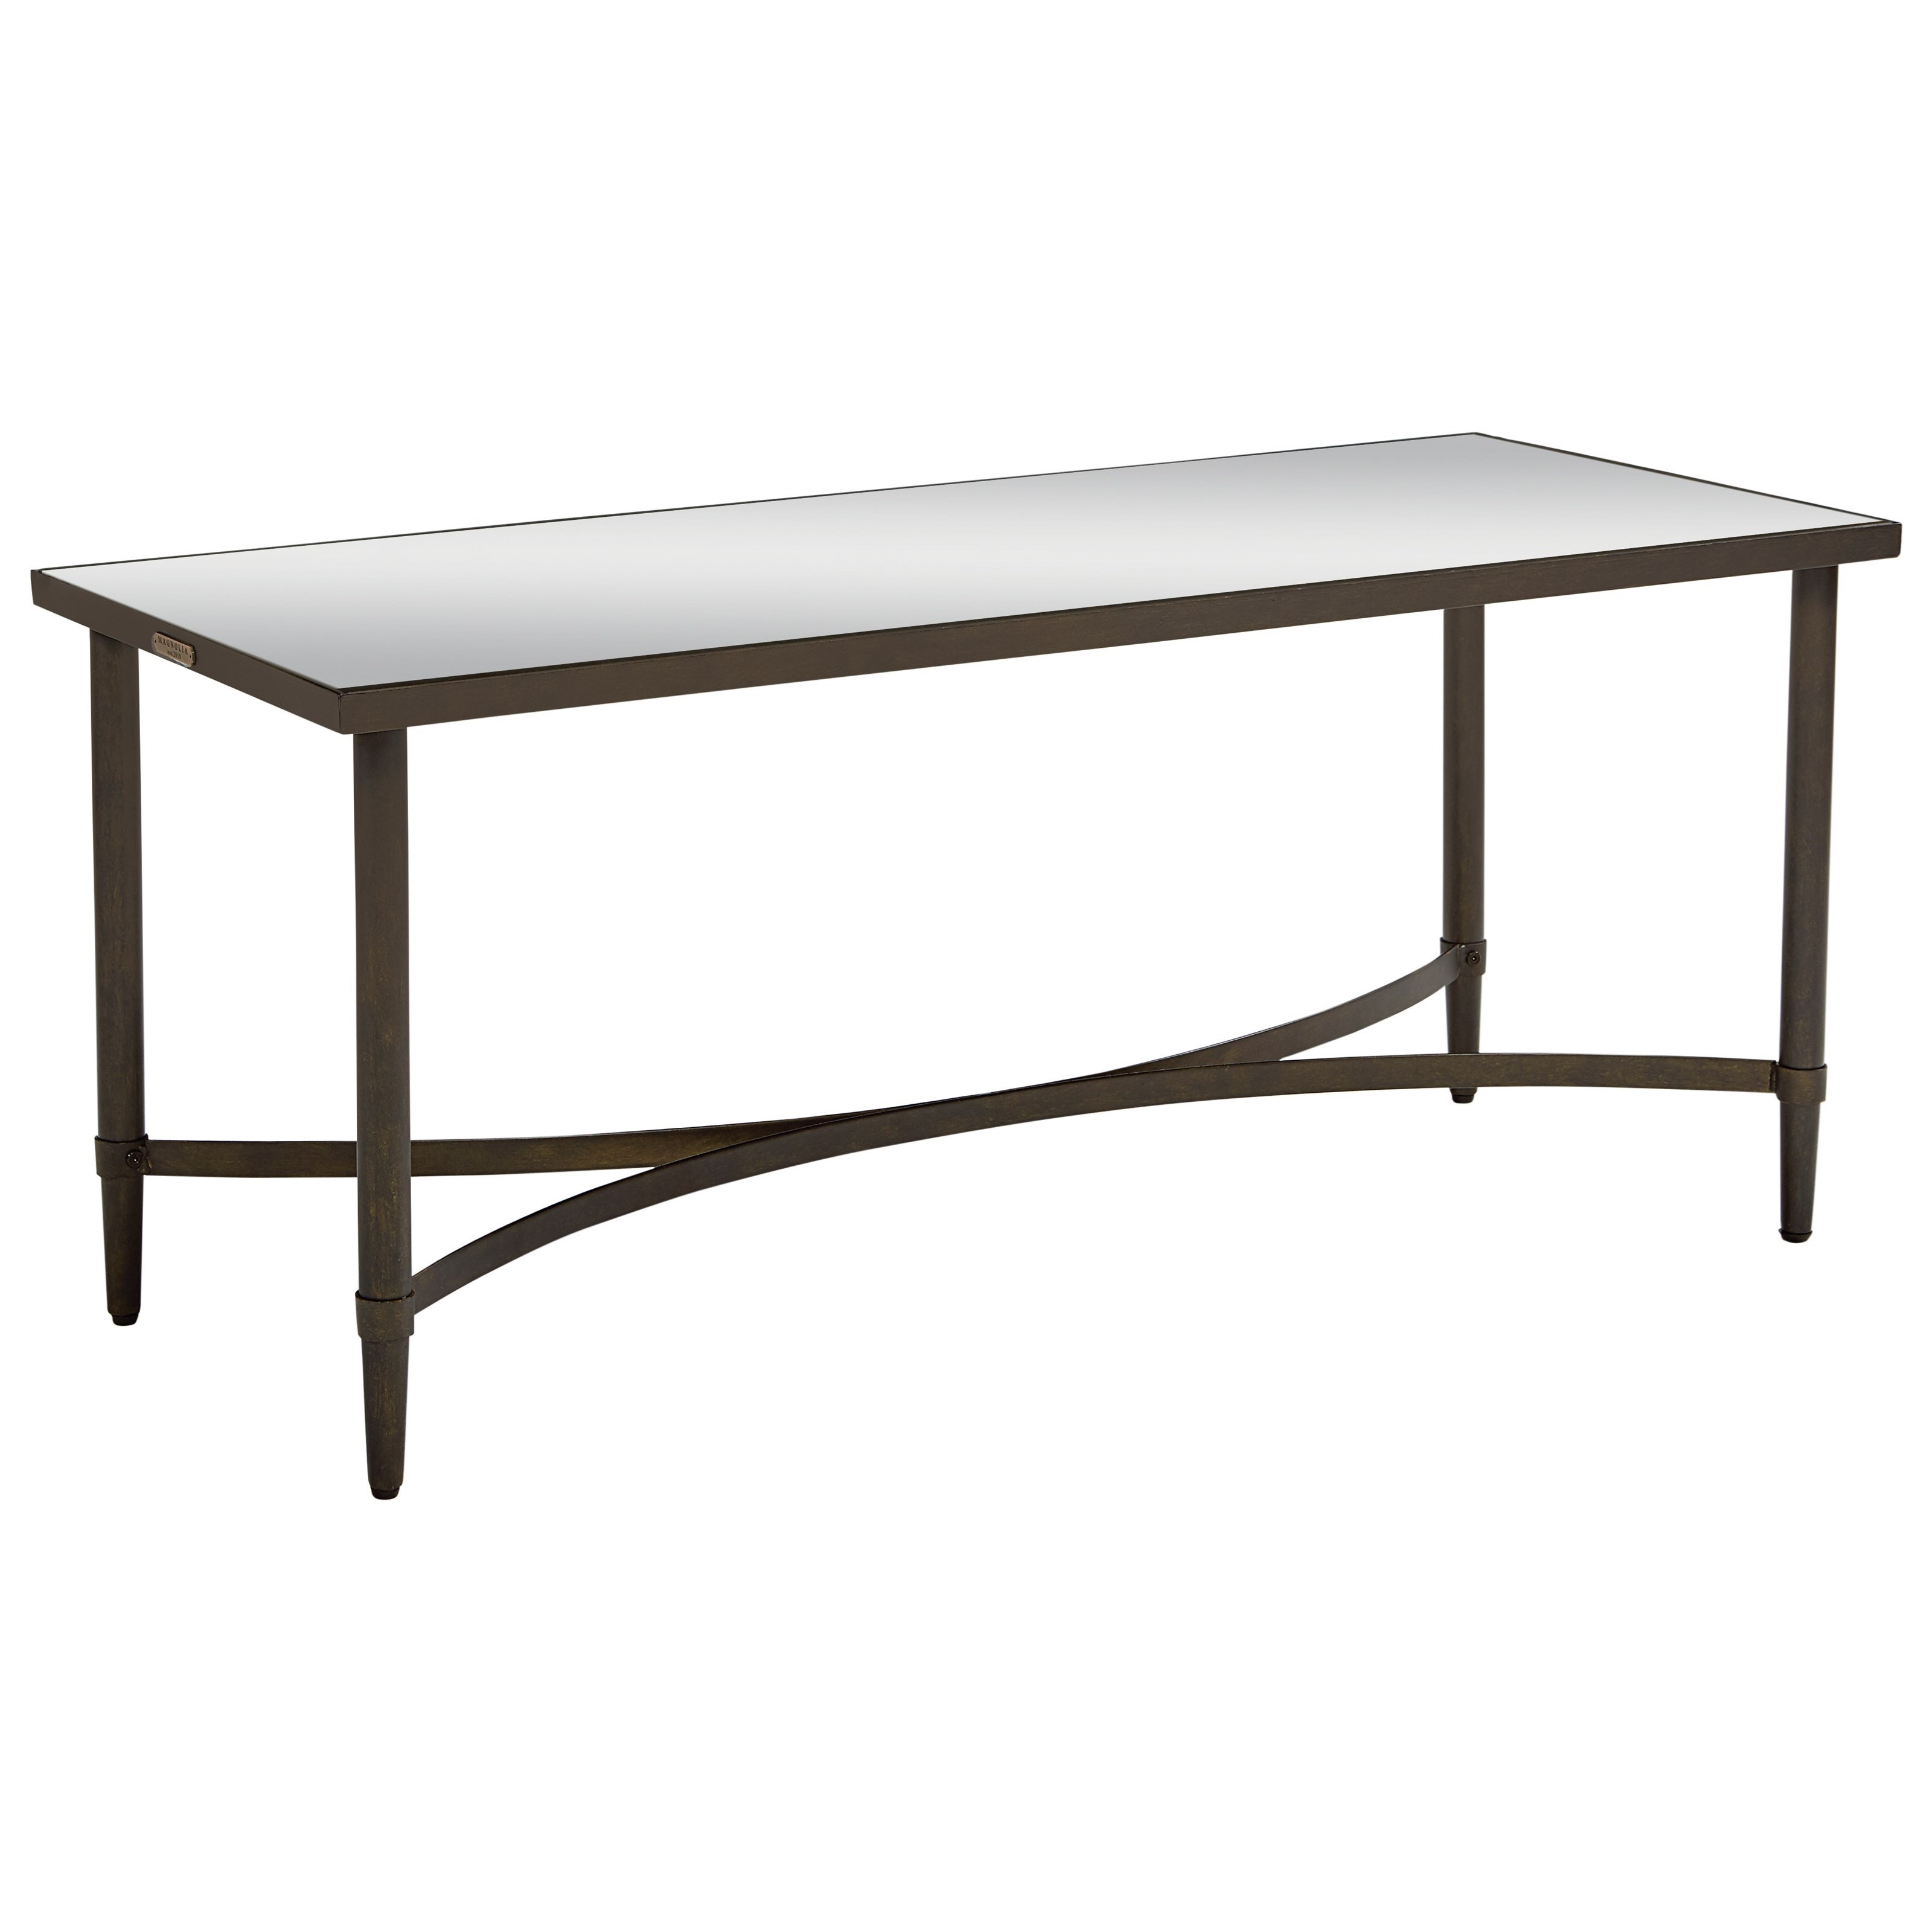 Magnolia home by joanna gaines accent elements coffee for Home furniture coffee tables